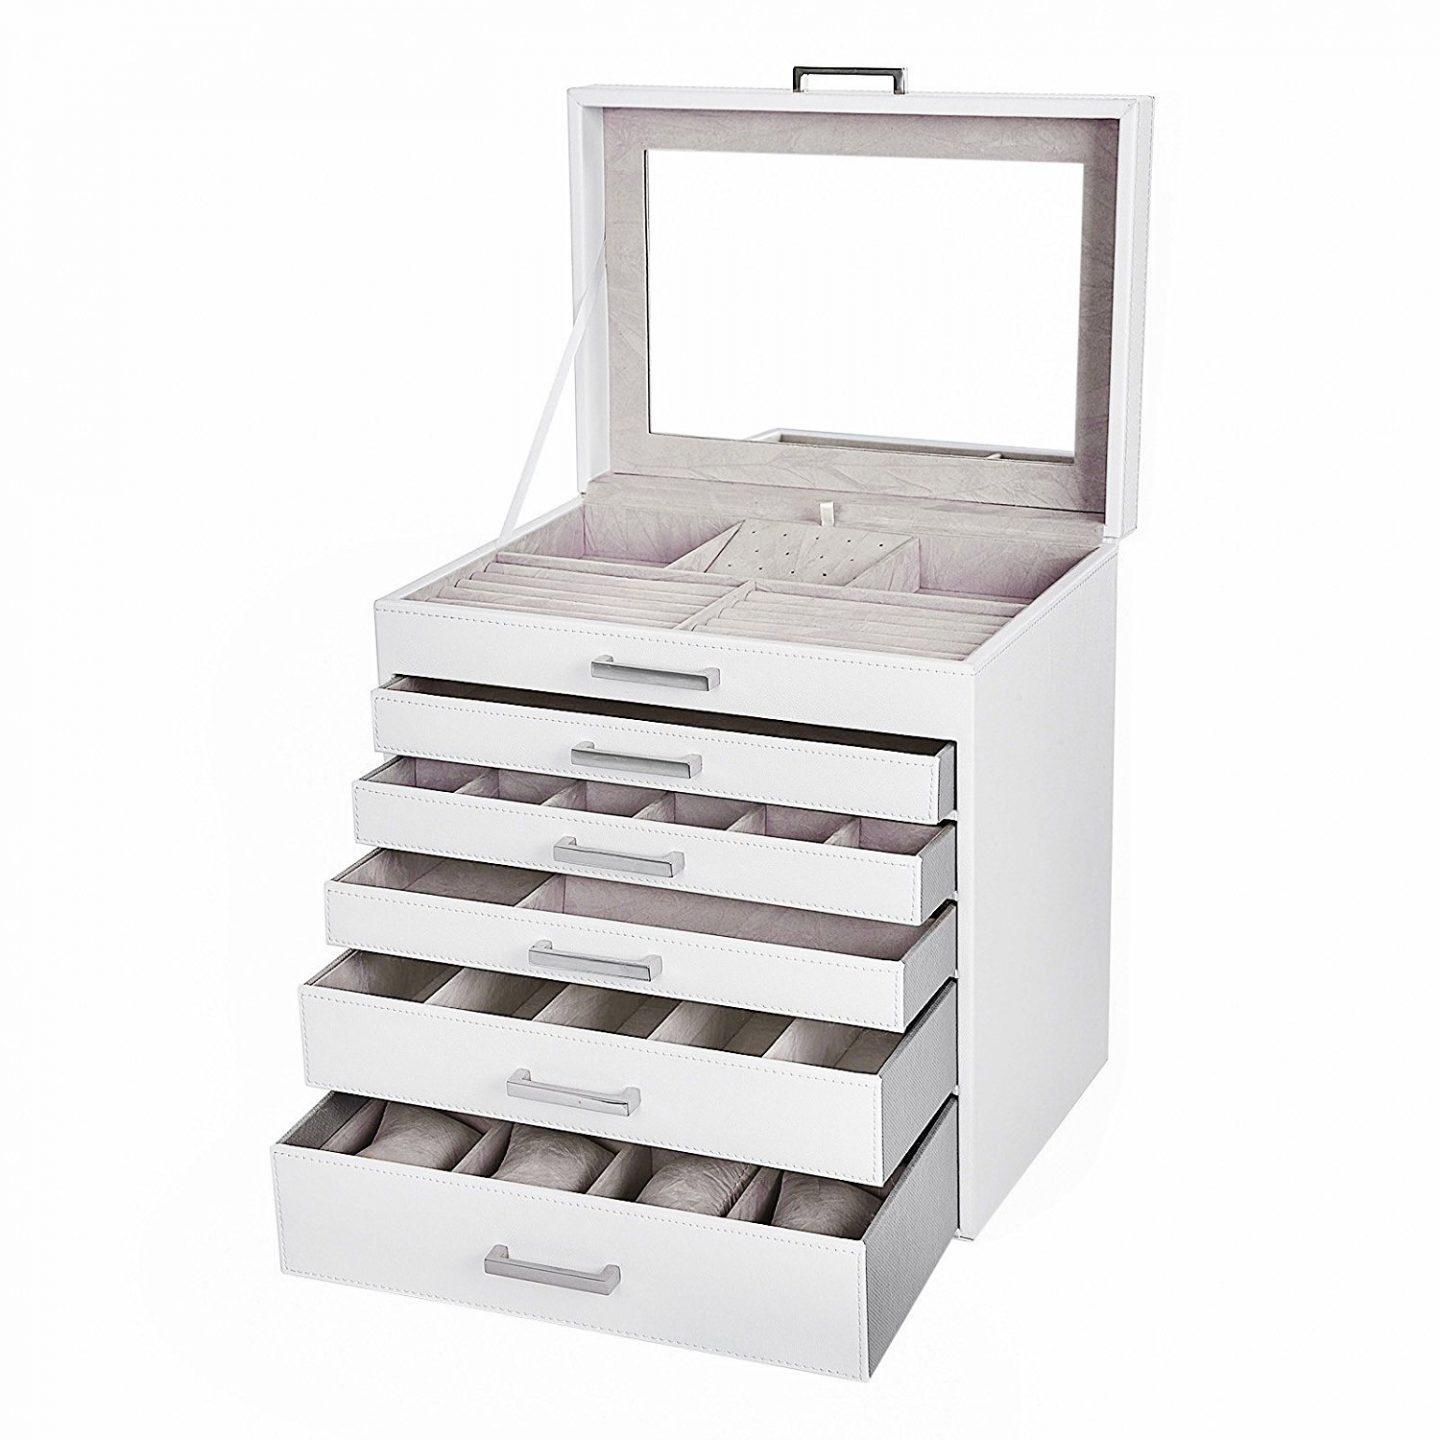 Maisons Du Monde Jewellery Box Songmics Jewellery Storage Case Organiser Review